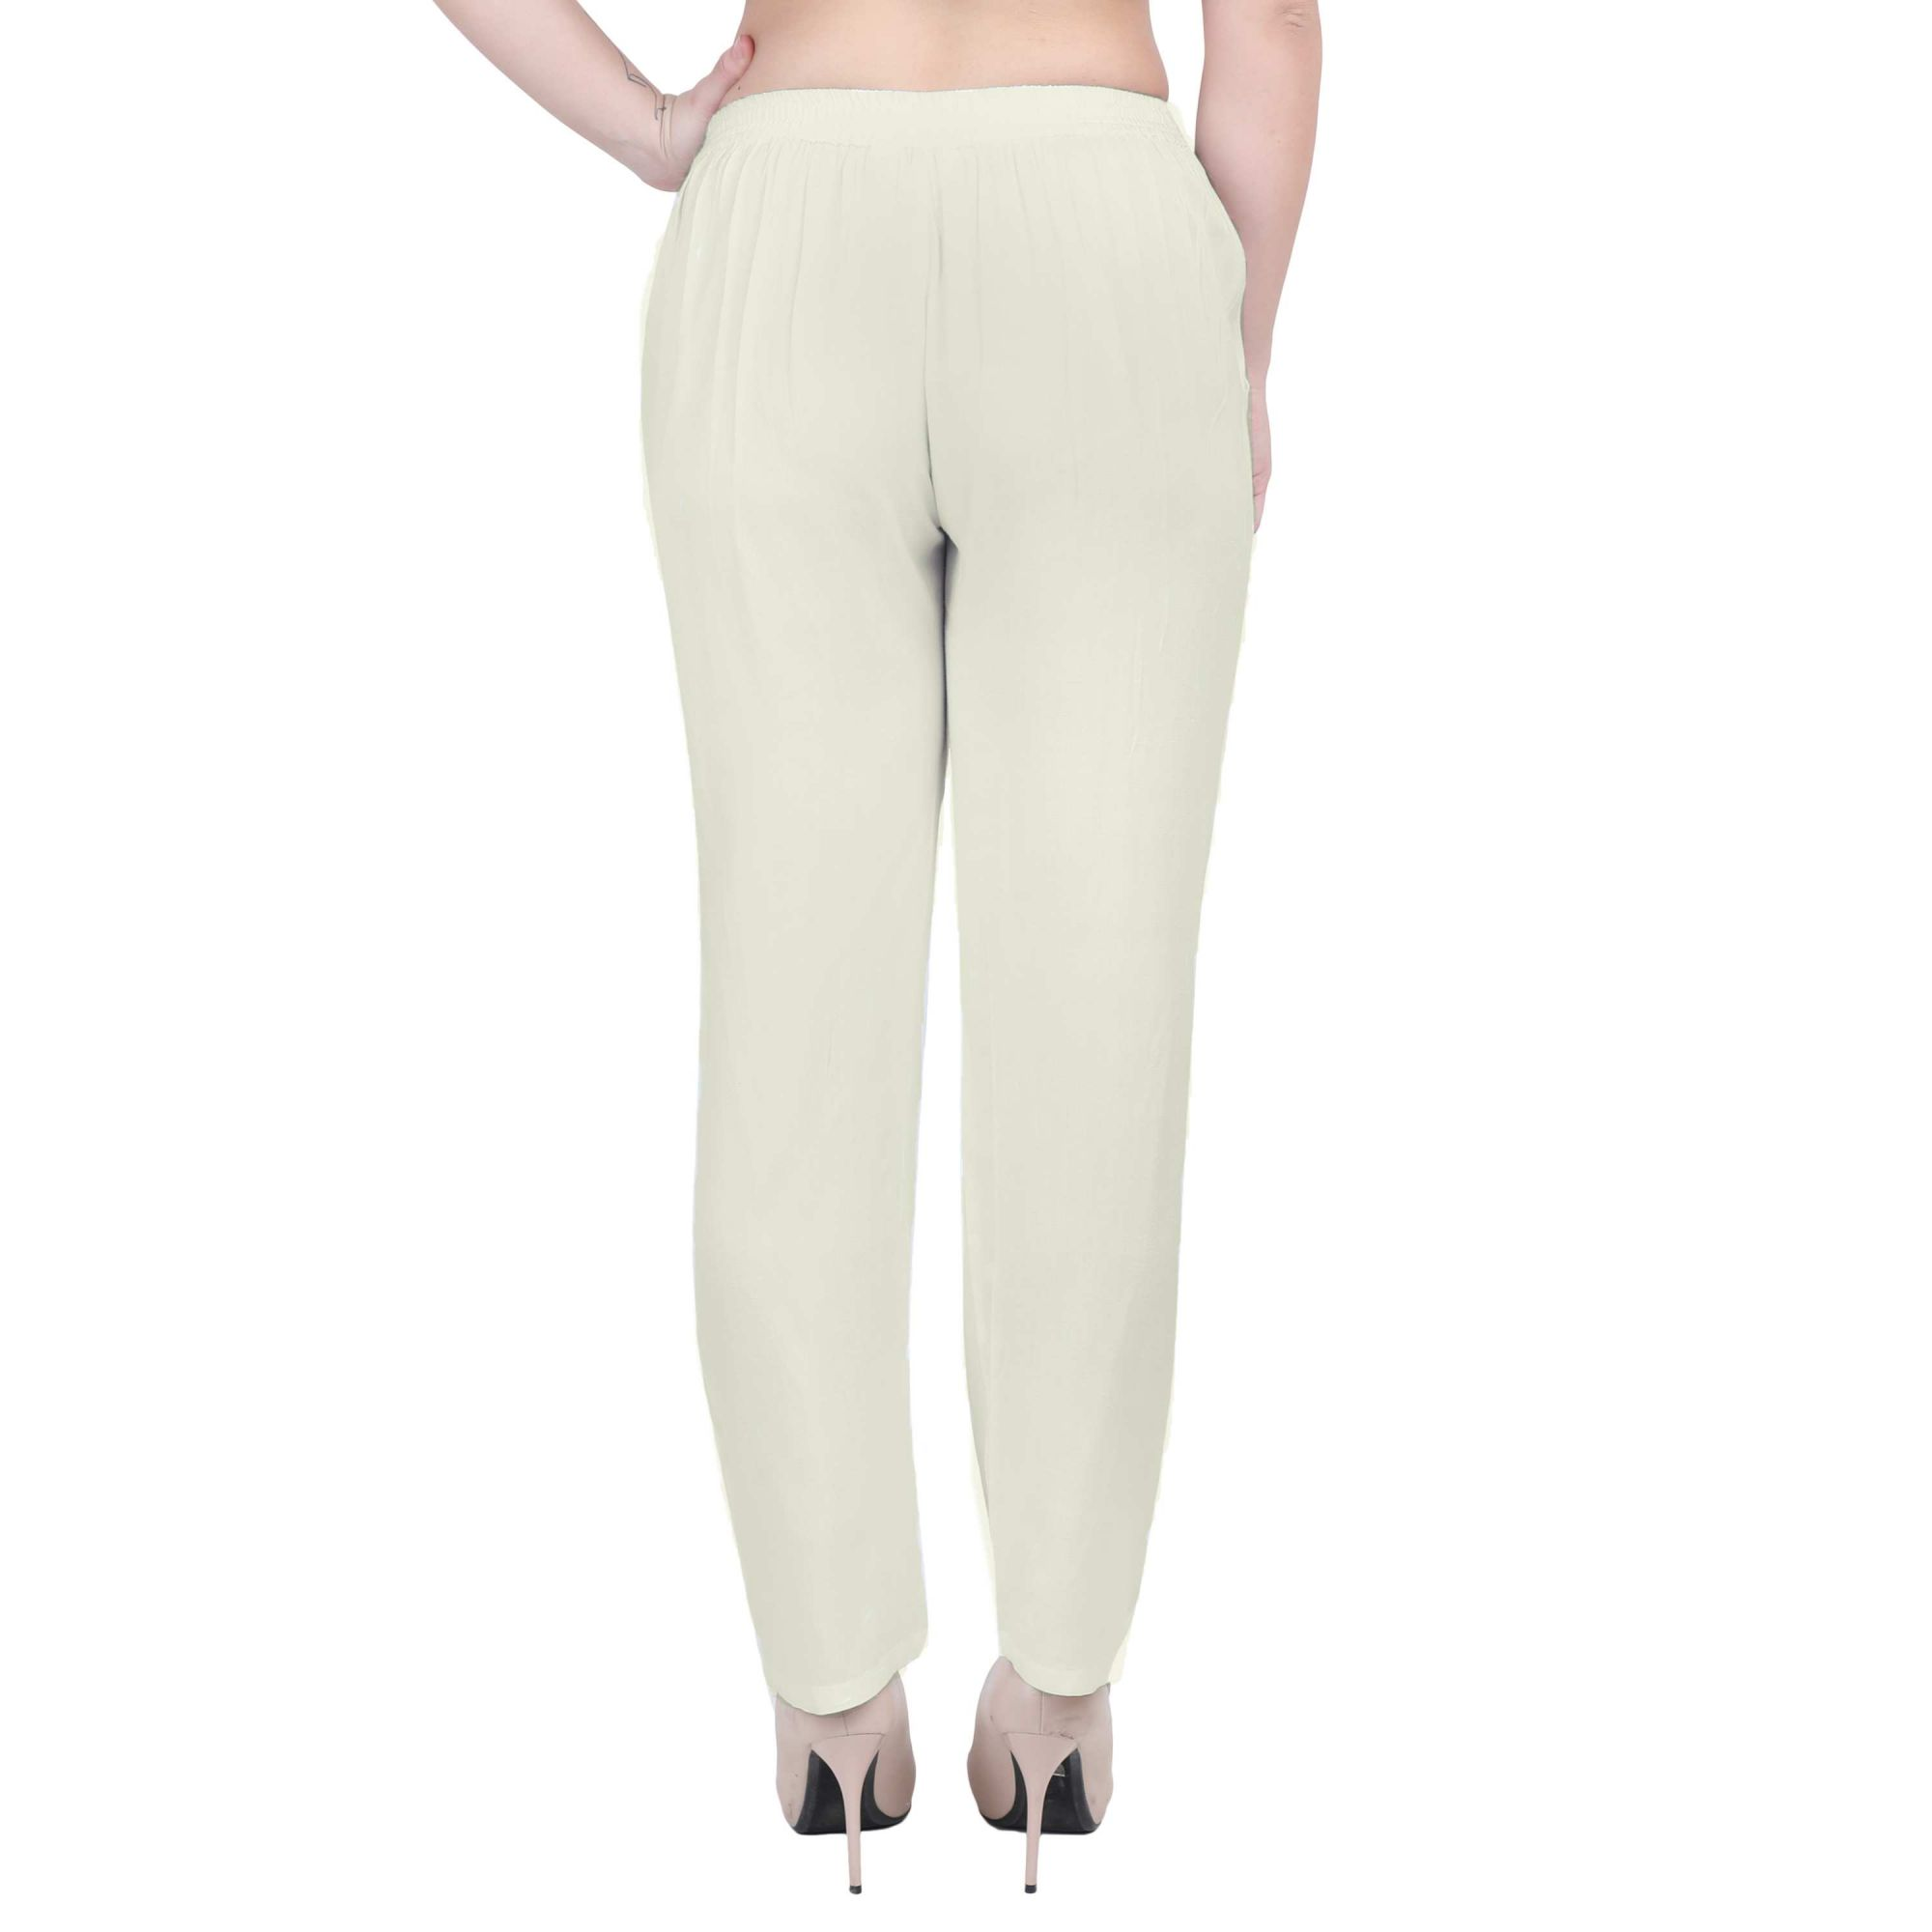 Western Fit Formal Trousers in Off-White